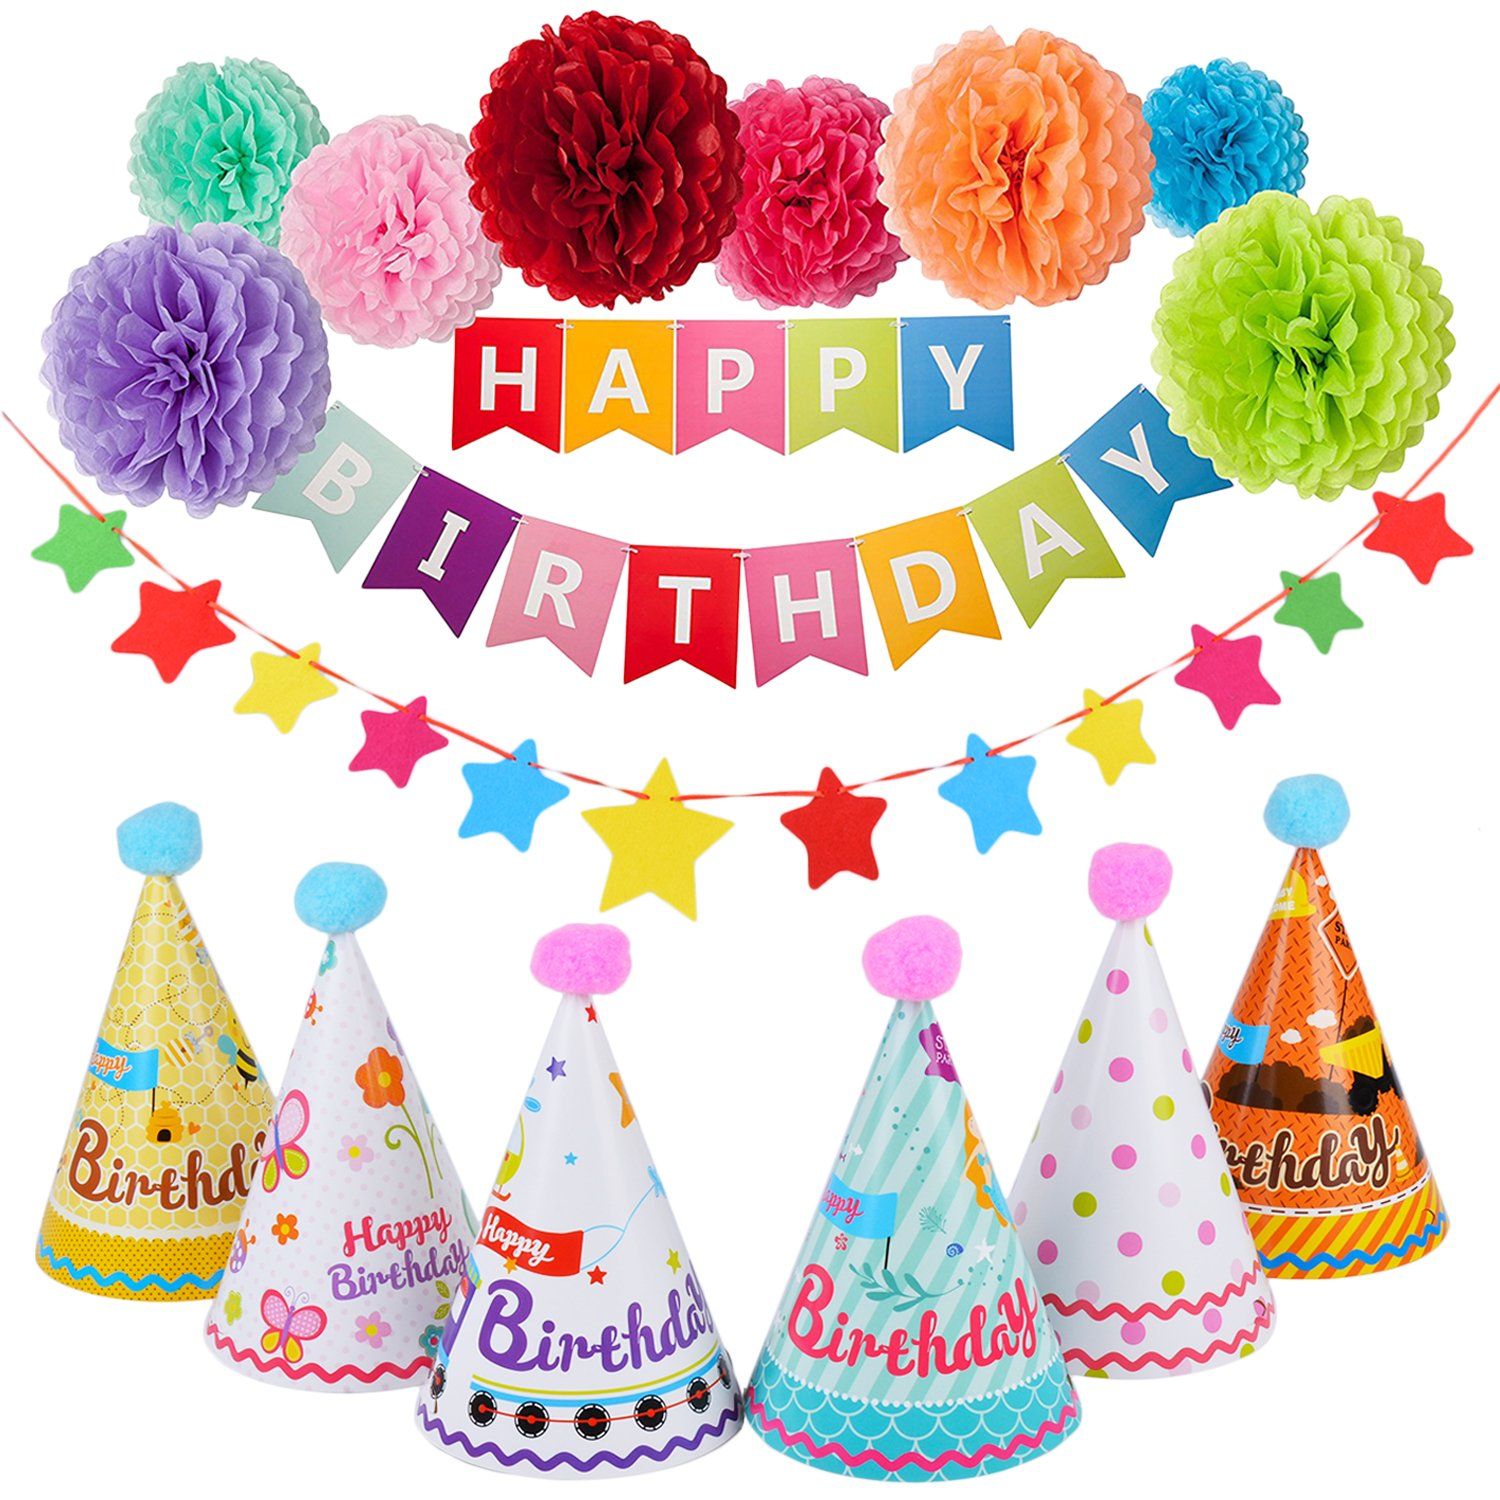 Outgeek Happy Birthday Banner Decorations Party Supplies, Birthday Party Decorations with Happy Birthday Banner Letters, Tissue Pom Poms Flowers, Star Paper Garland Happy Birthday Hat